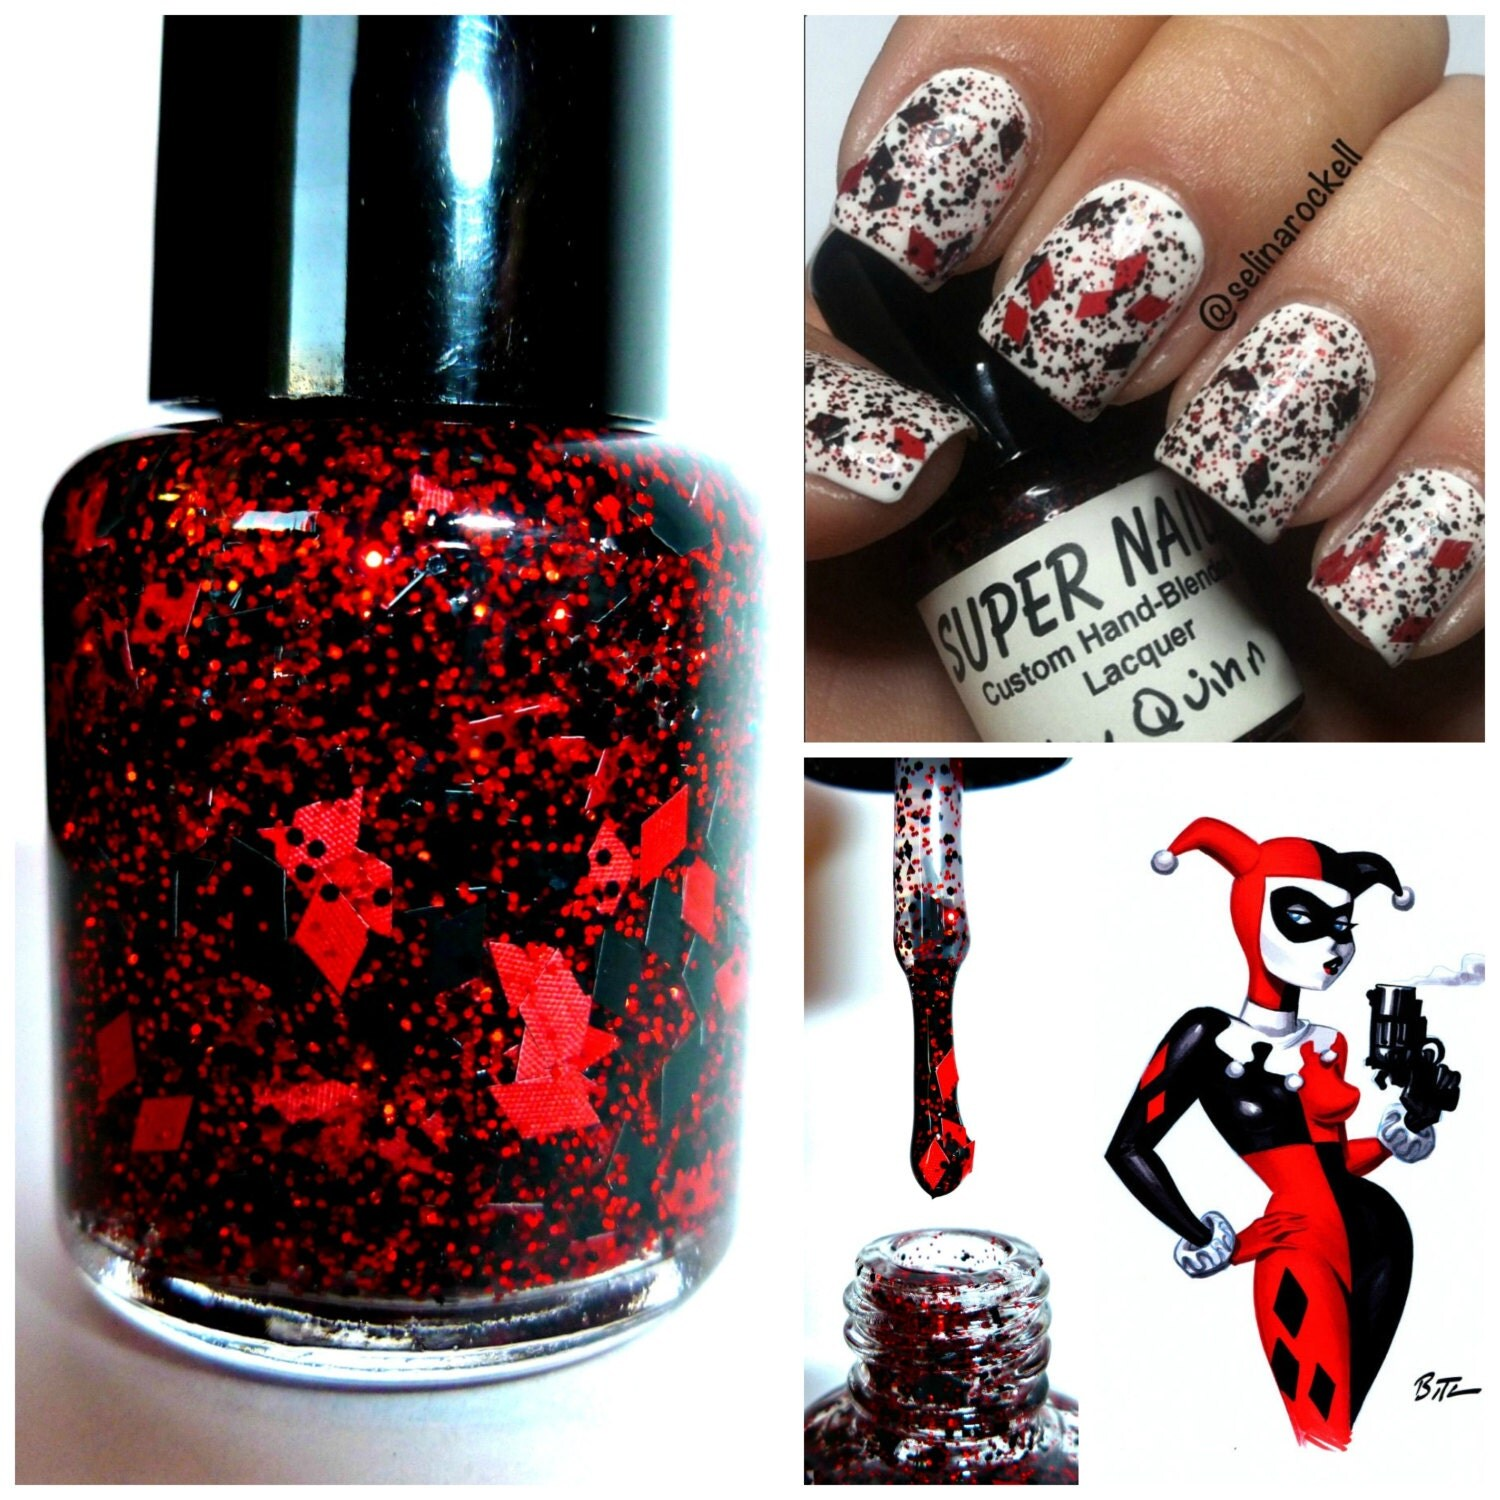 harley quinn art harley quinn wedding ring Harley Quinn 15 mL full size bottle Indie Handmade Nail Polish 5 Free Custom Blended Glitter Lacquer